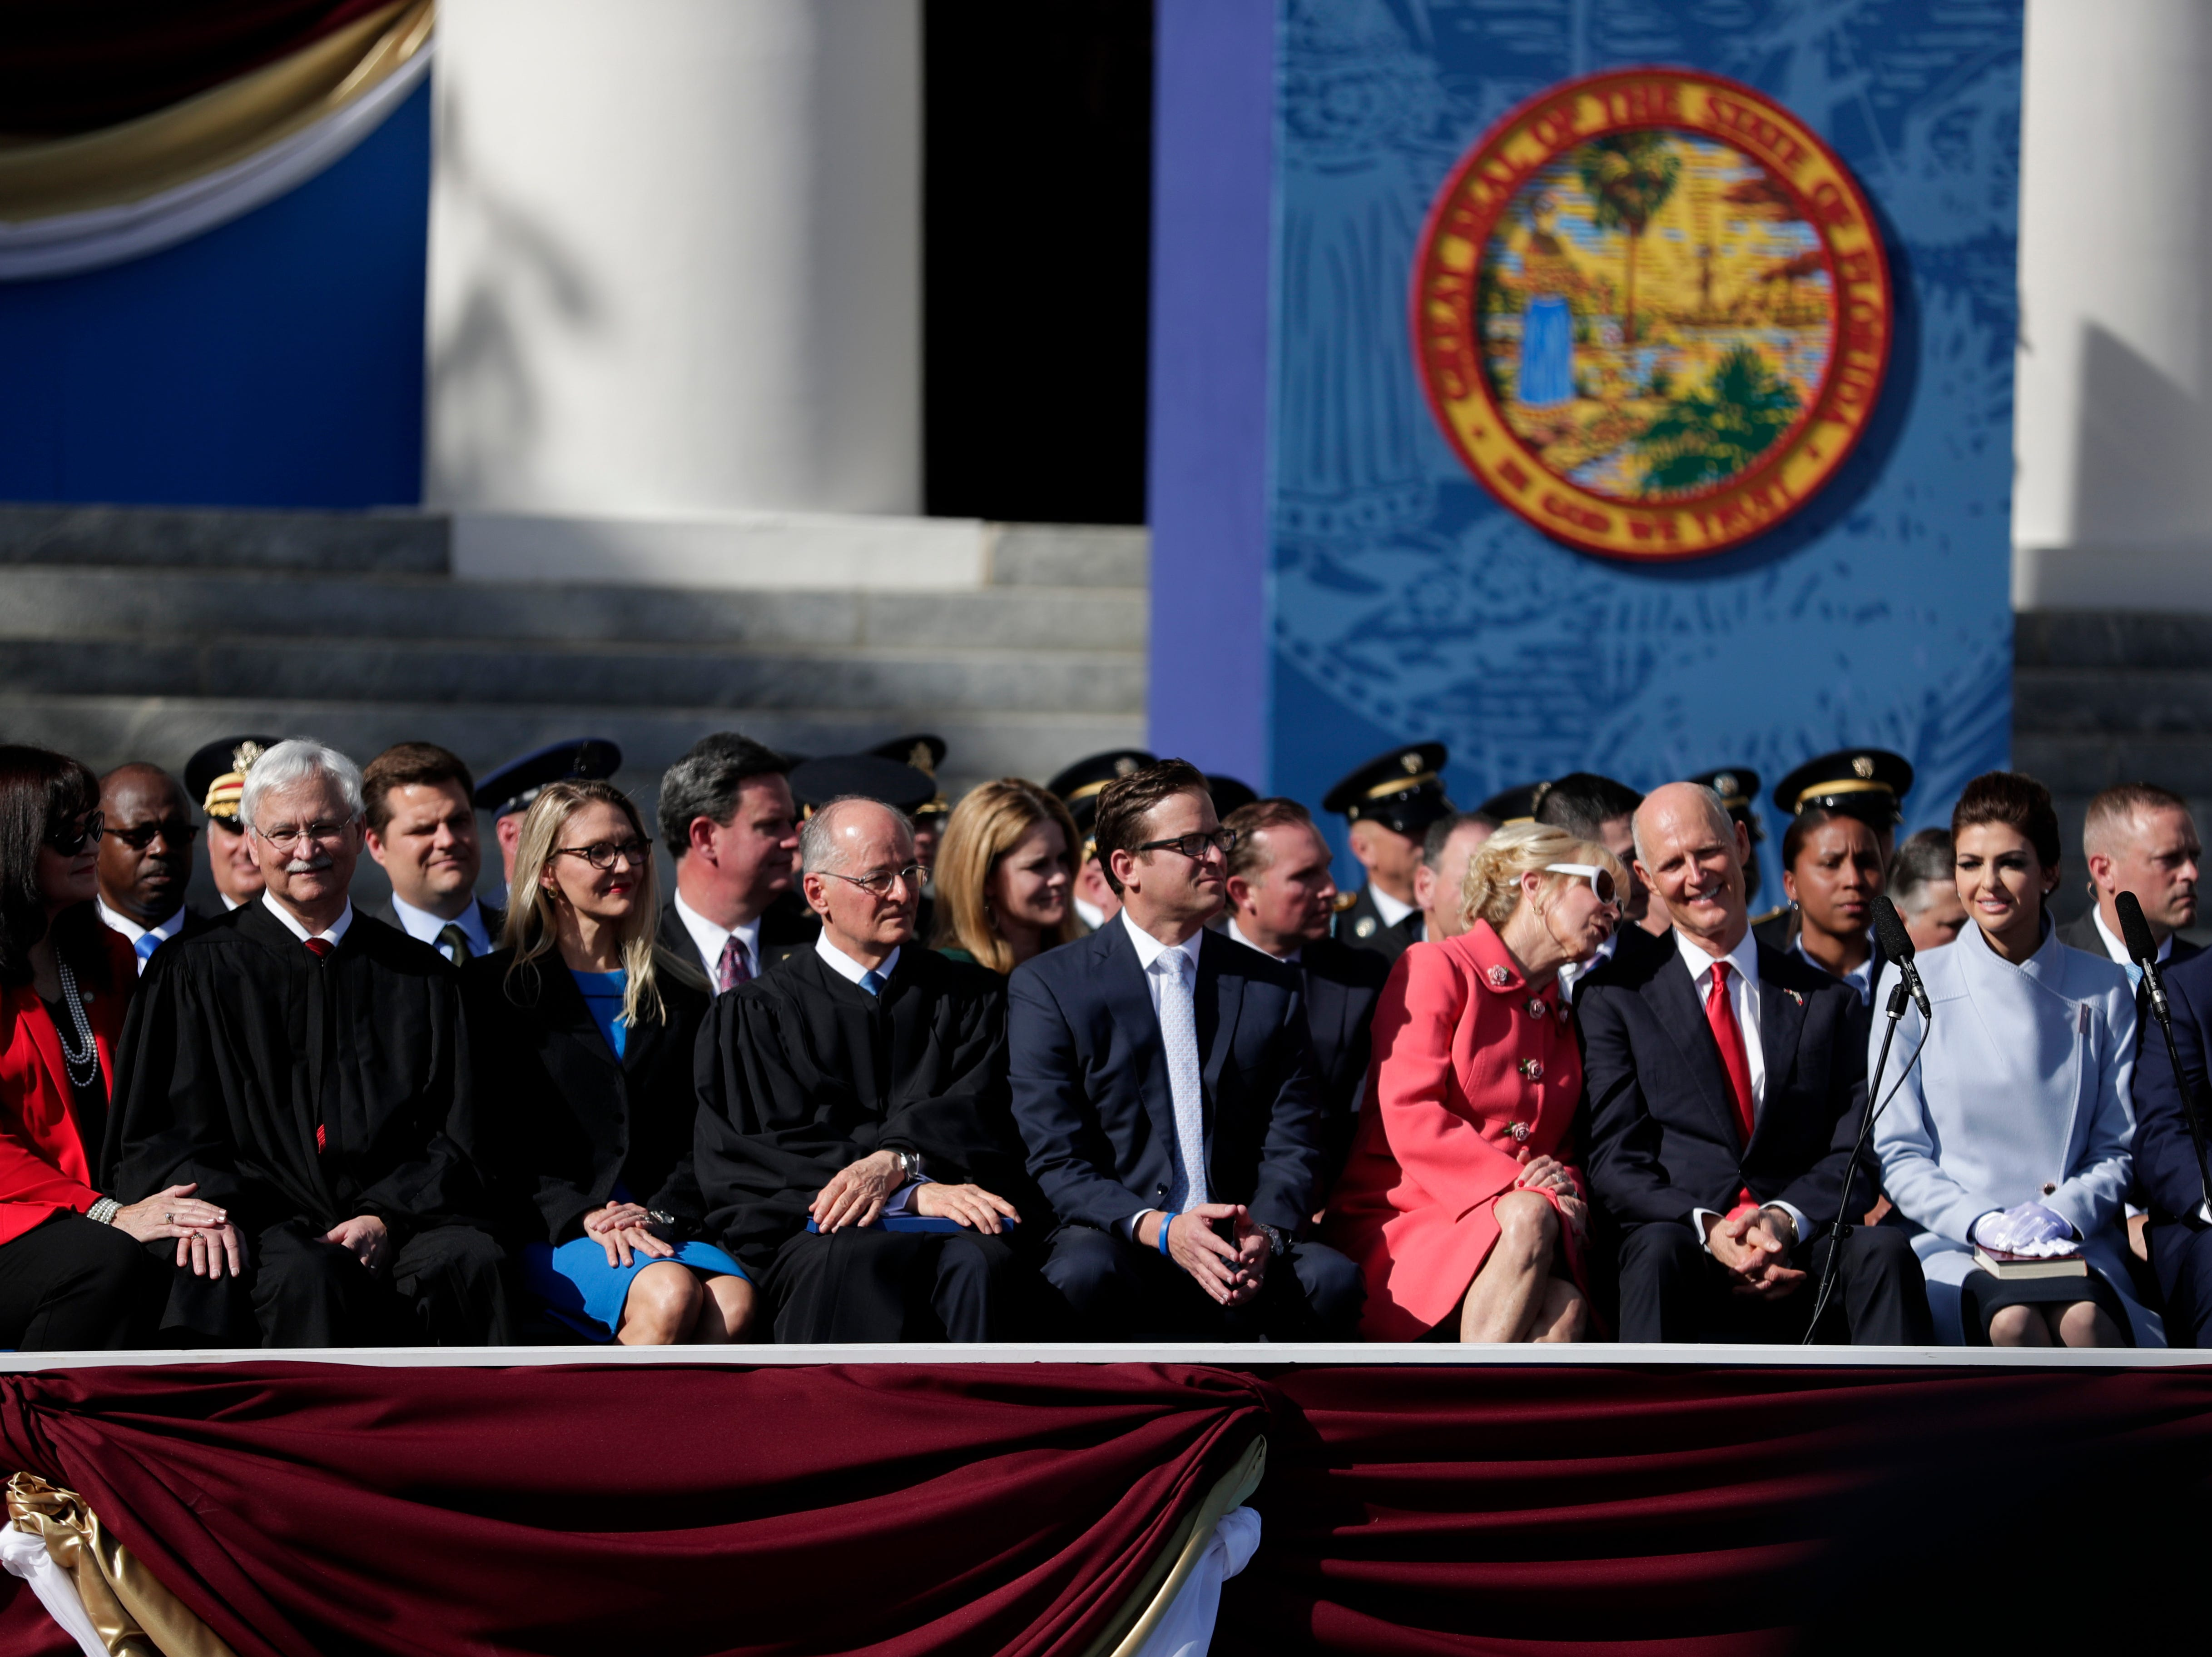 Former first lady Ann Scott and former governor Rick Scott share thoughts during the 2019 inauguration ceremony on the steps of the Historic Capitol Building in Tallahassee Tuesday, Jan. 8, 2019.